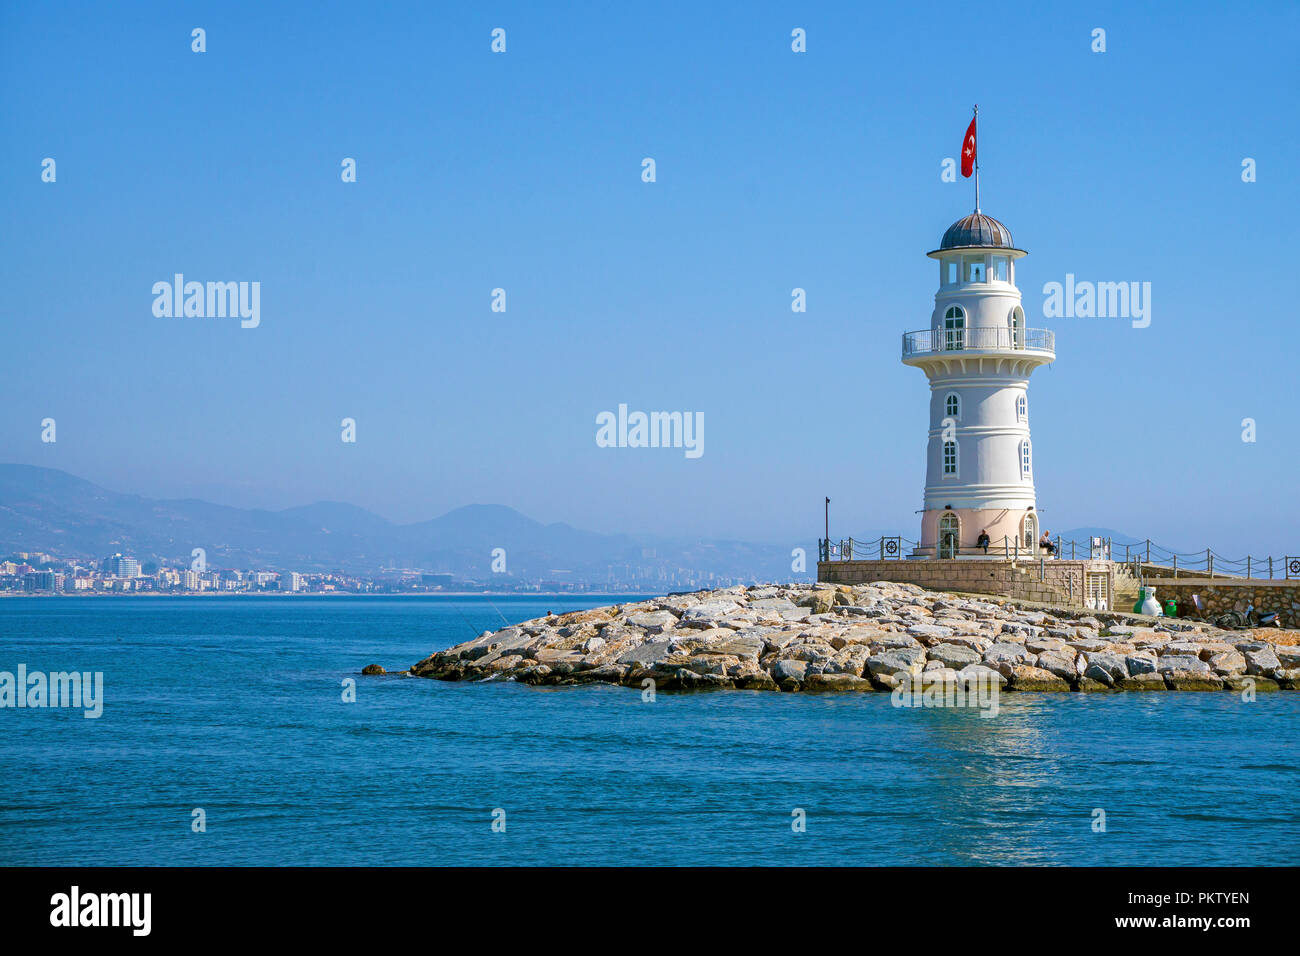 Lighthouse at the harbor entrance of Alanya, seaside resort on the Turkish Riviera, Turkey - Stock Image